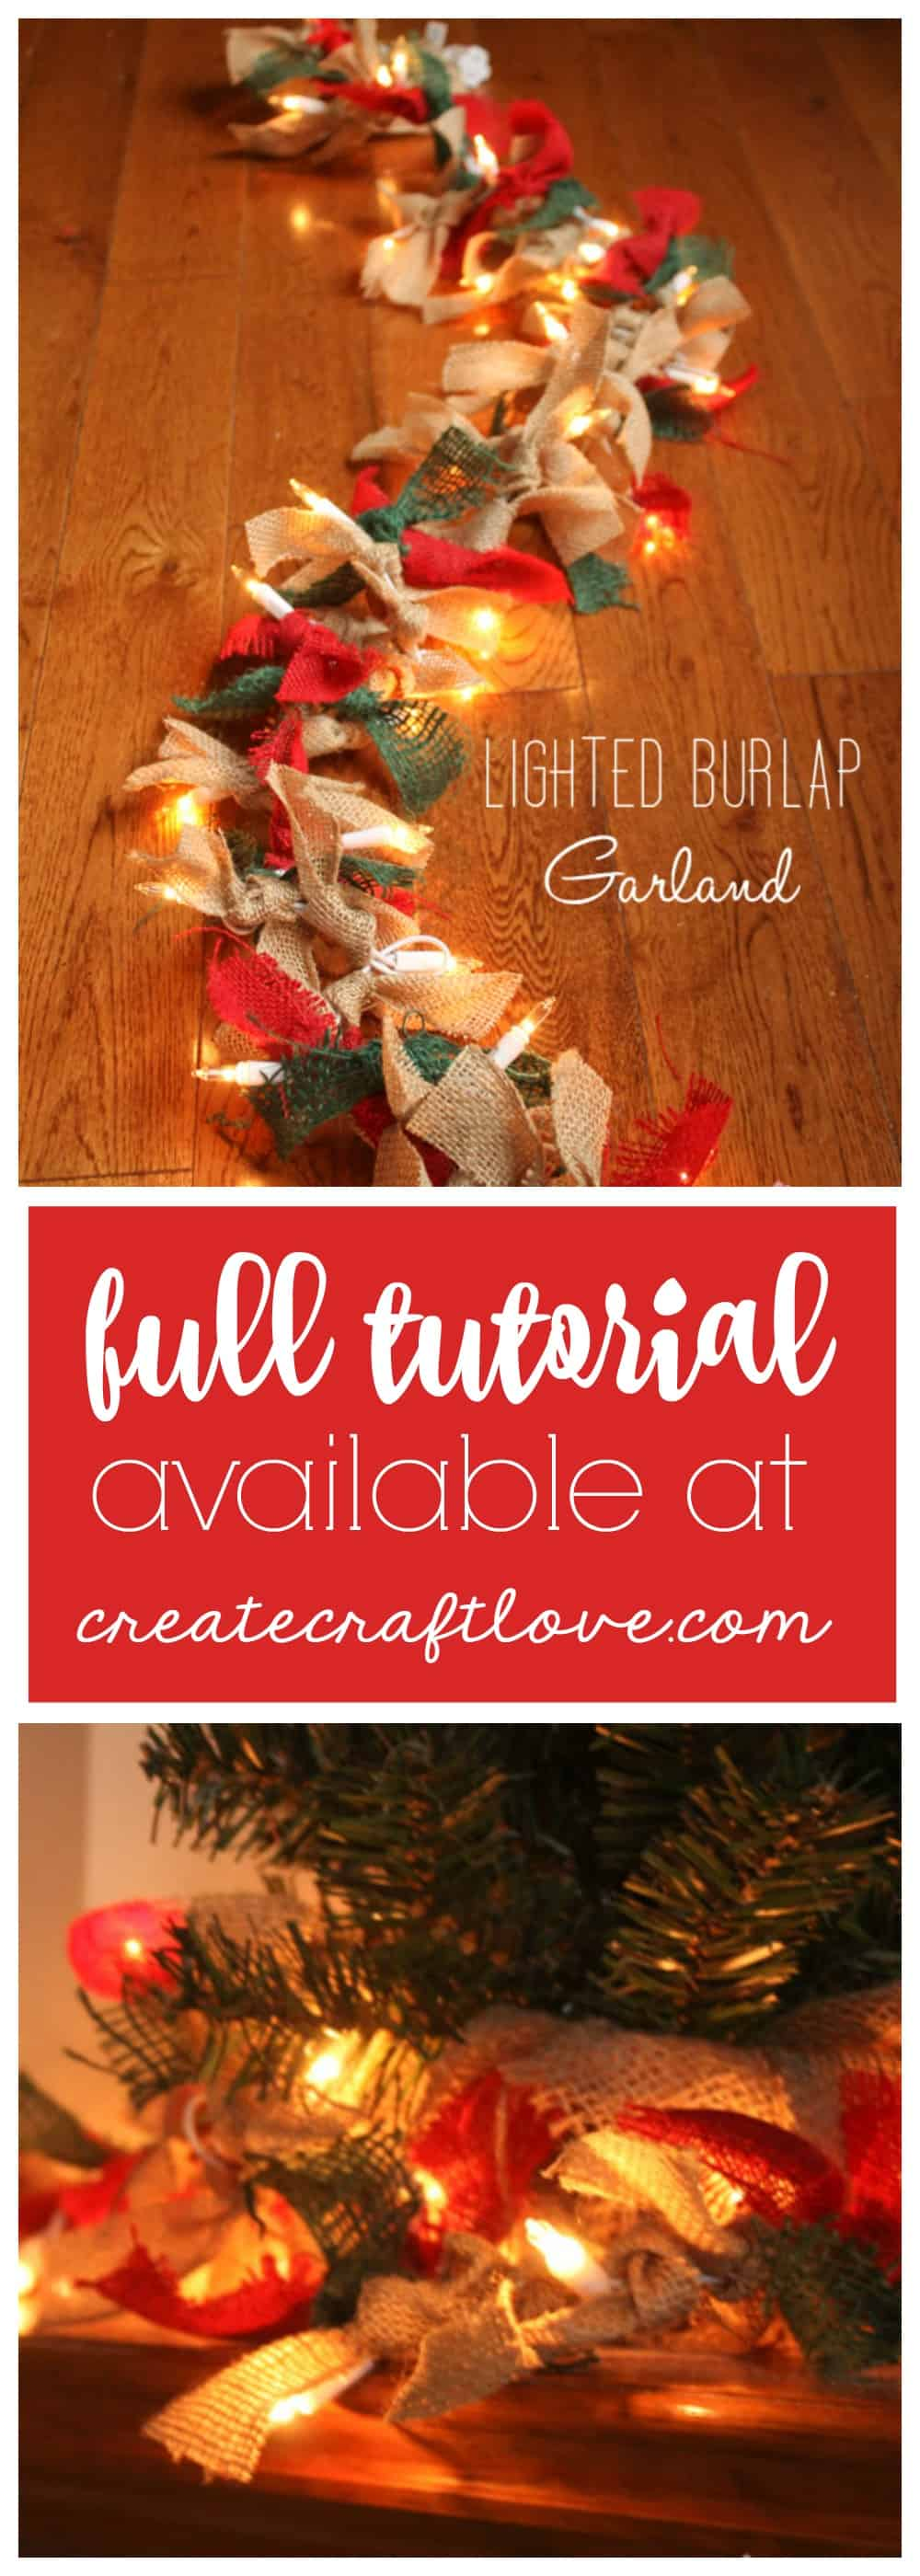 This Lighted Burlap Garland adds a rustic element to holiday decor!